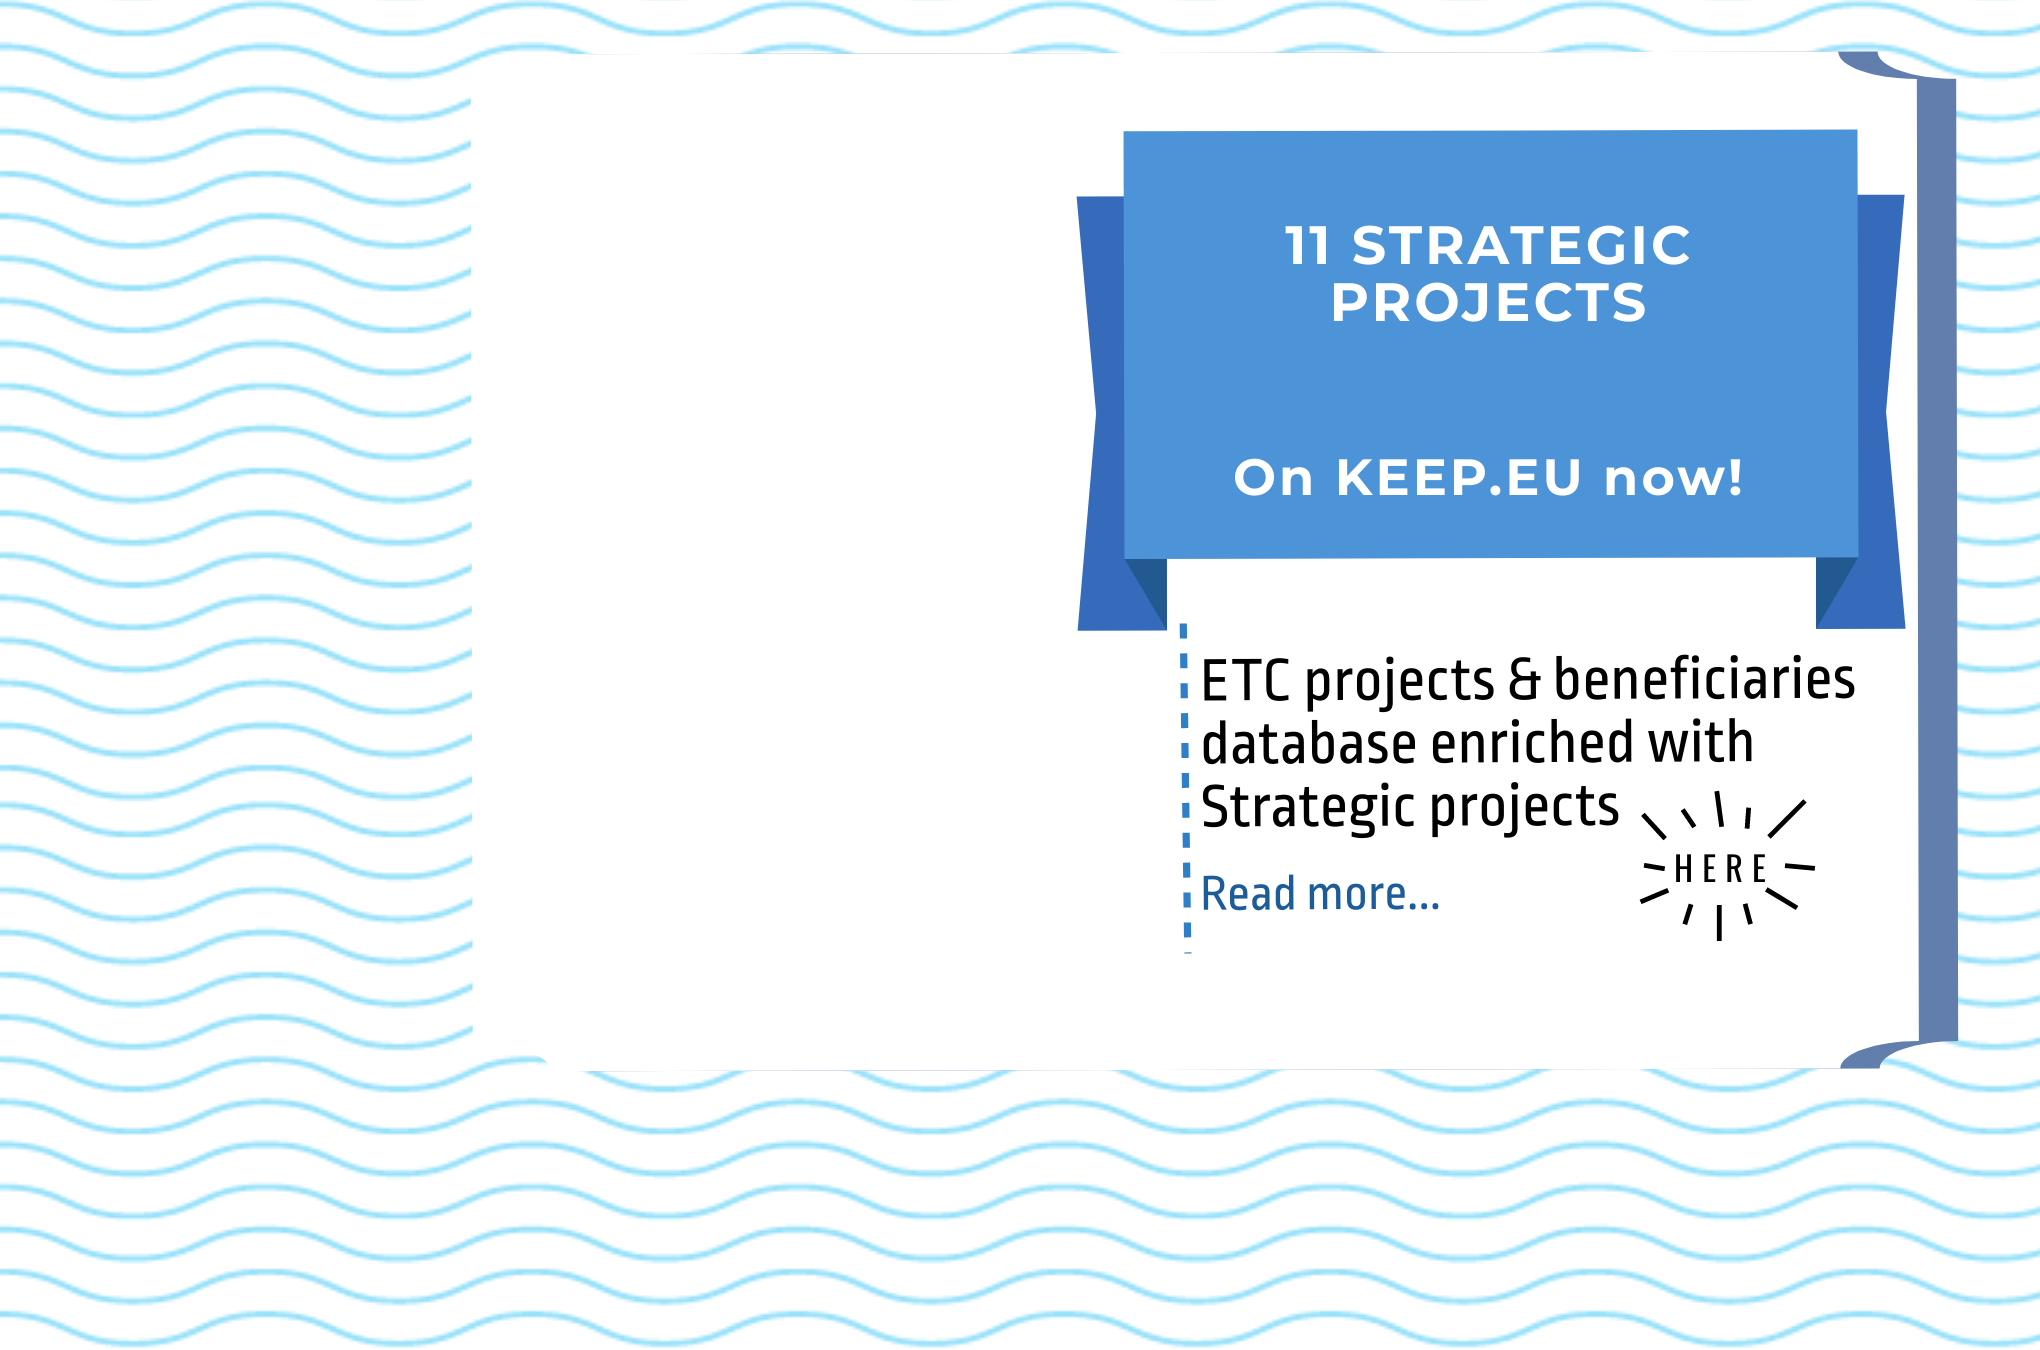 11 Strategic projects are available on Keep.eu